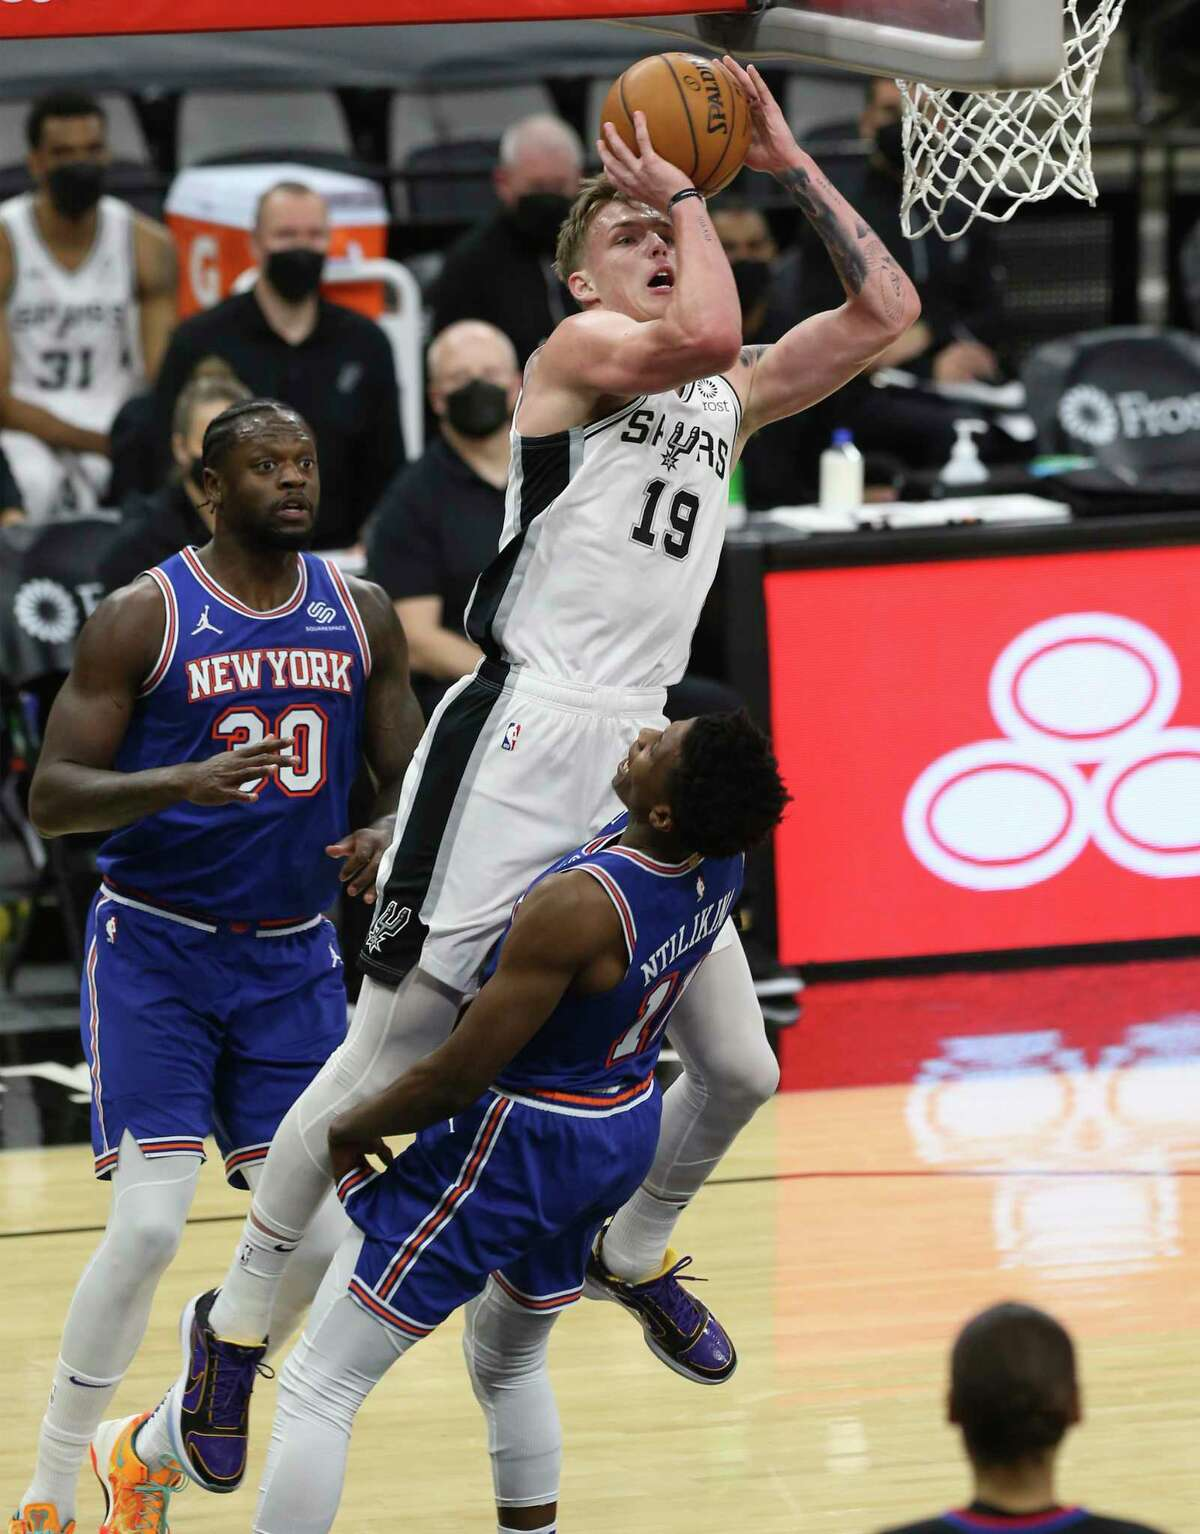 Spurs' Luka Samanic (19) commits a charge against New York Knicks' Frank Ntilikina (11) at the AT&T Center on Tuesday, Mar. 2, 2021.